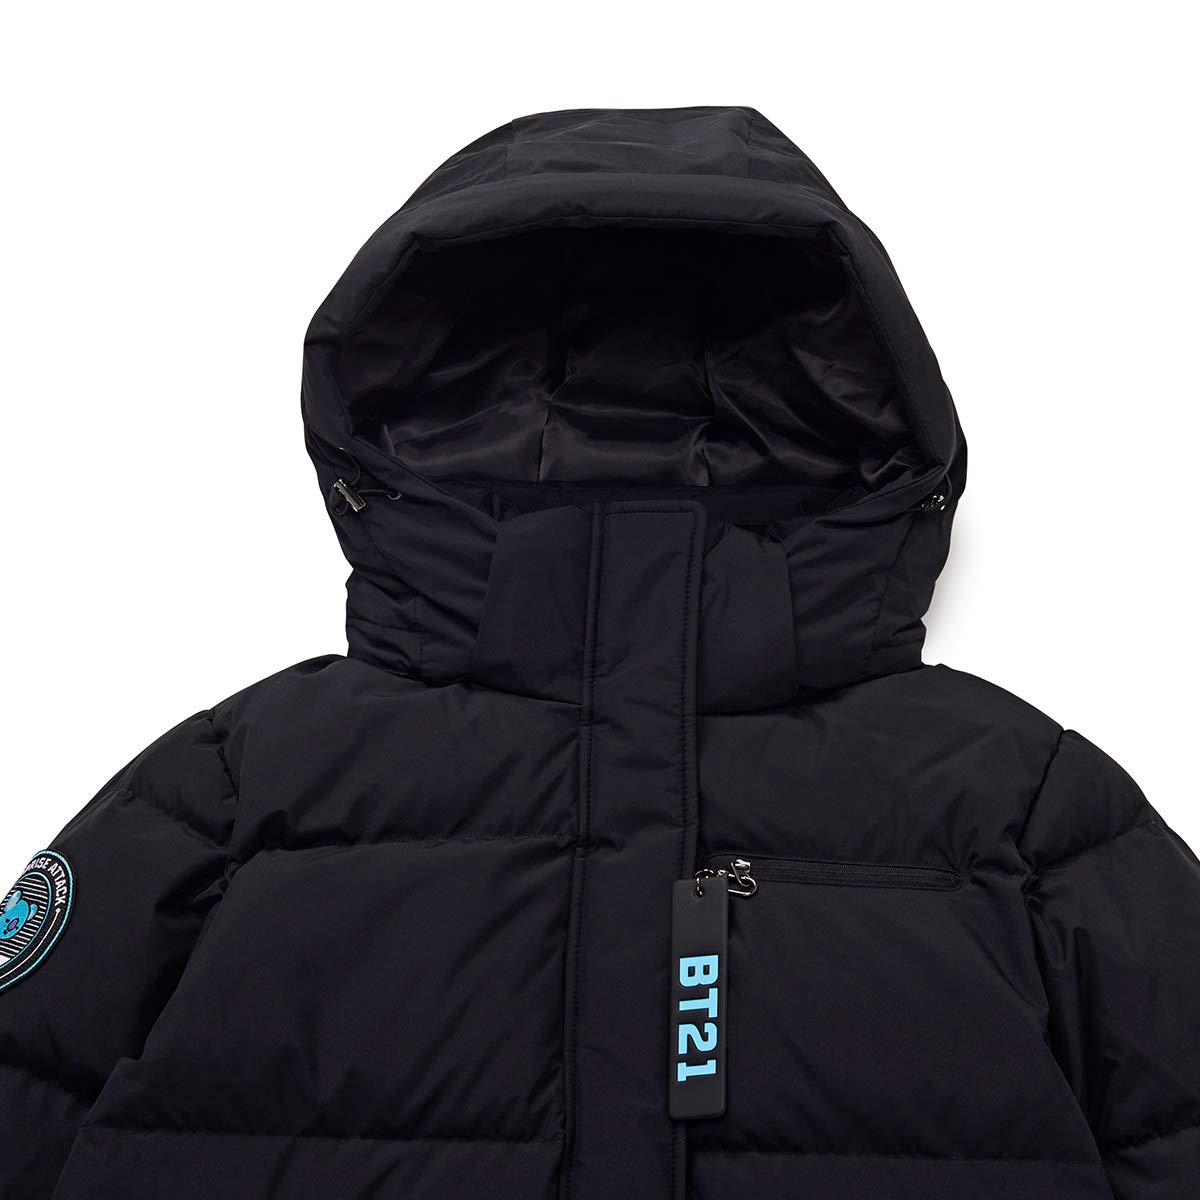 bae3be25f Amazon.com: BT21 Official Merchandise by Line Friends - Character Down  Parka Jacket Winter Coat: Clothing